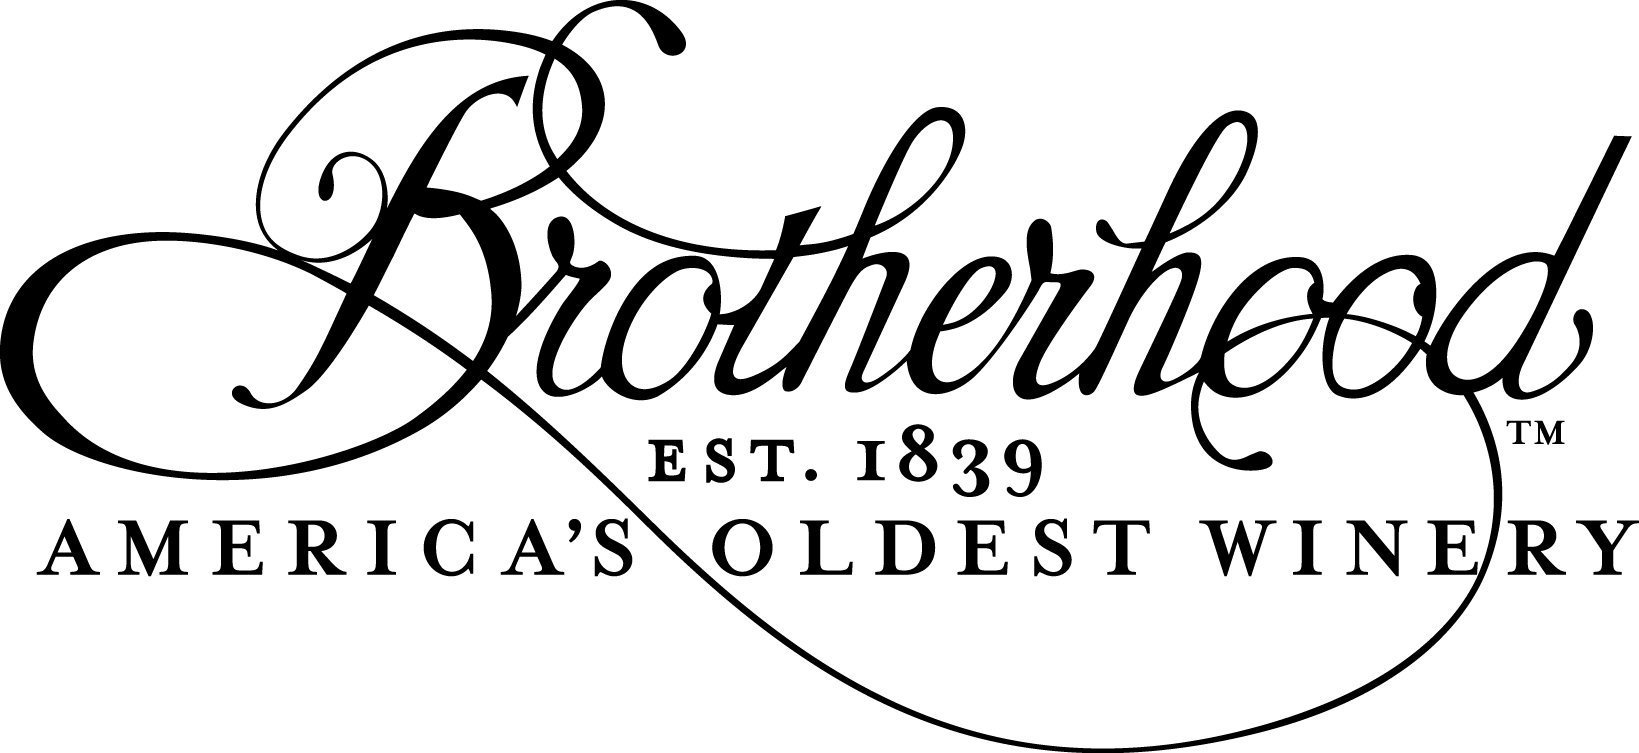 Brotherhood Wines